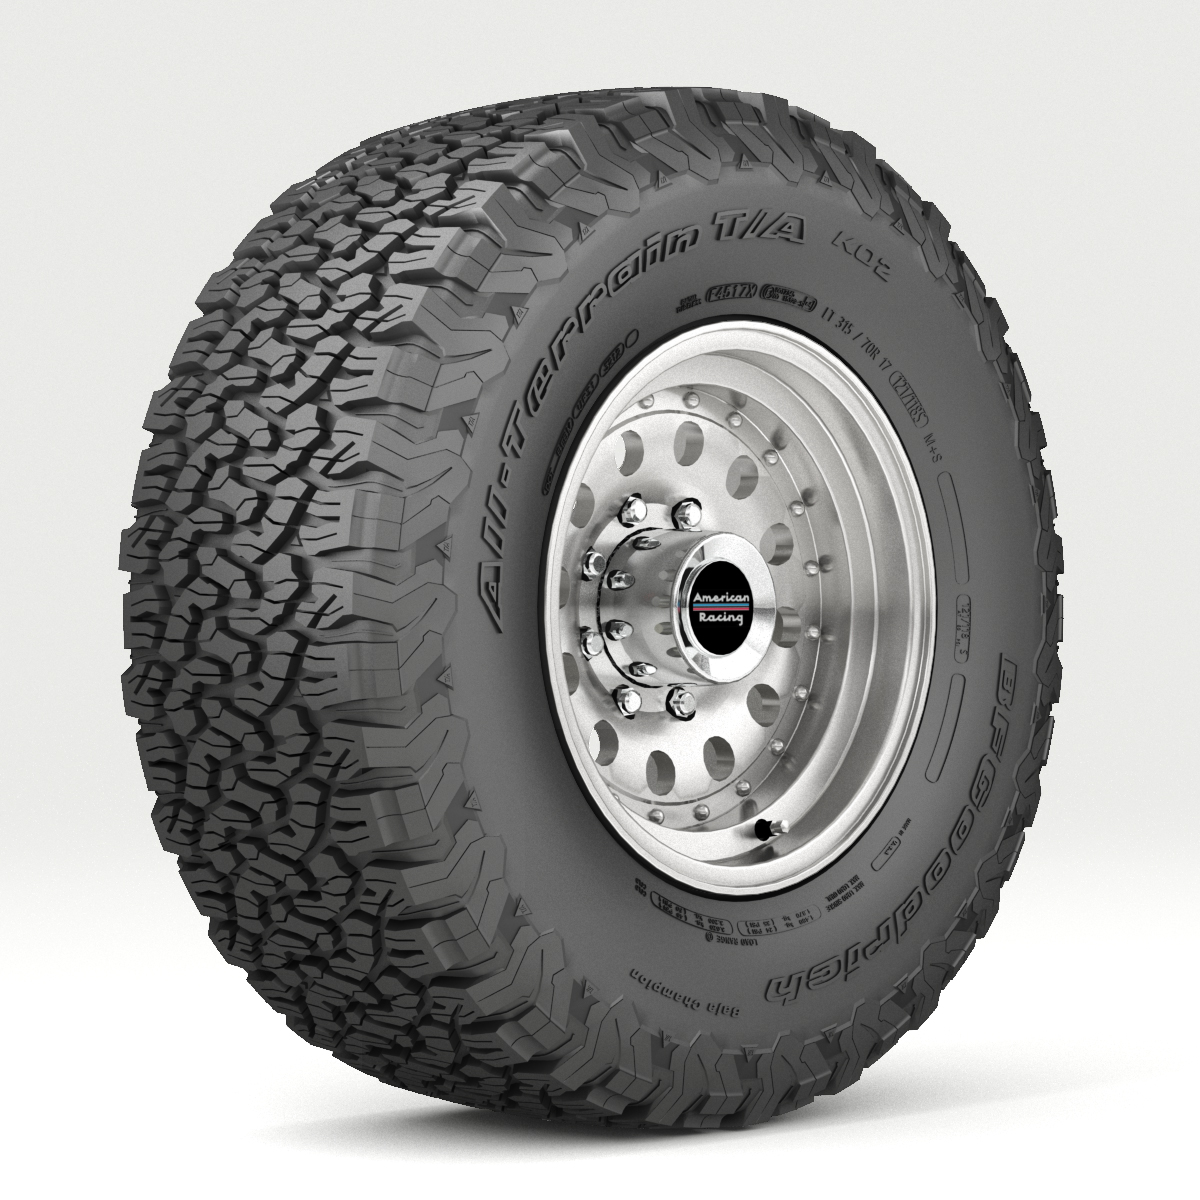 off road wheel and ban 5 3d model 3ds max fbx tga targa icb vda pix obj 224470